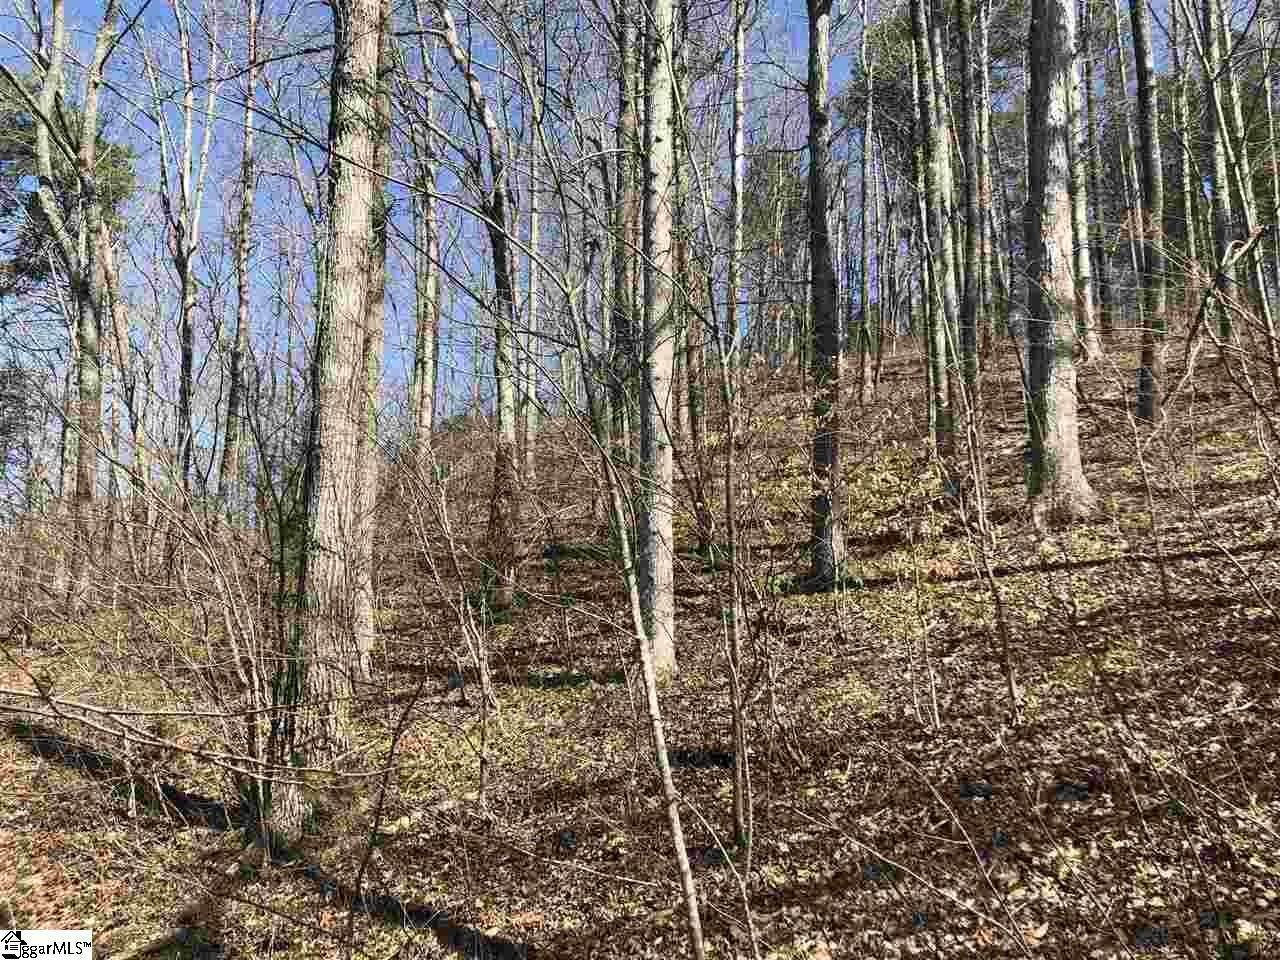 23. Residential Lot for Sale at The Reserve At Lake Keowee, Sunset, SC 29685